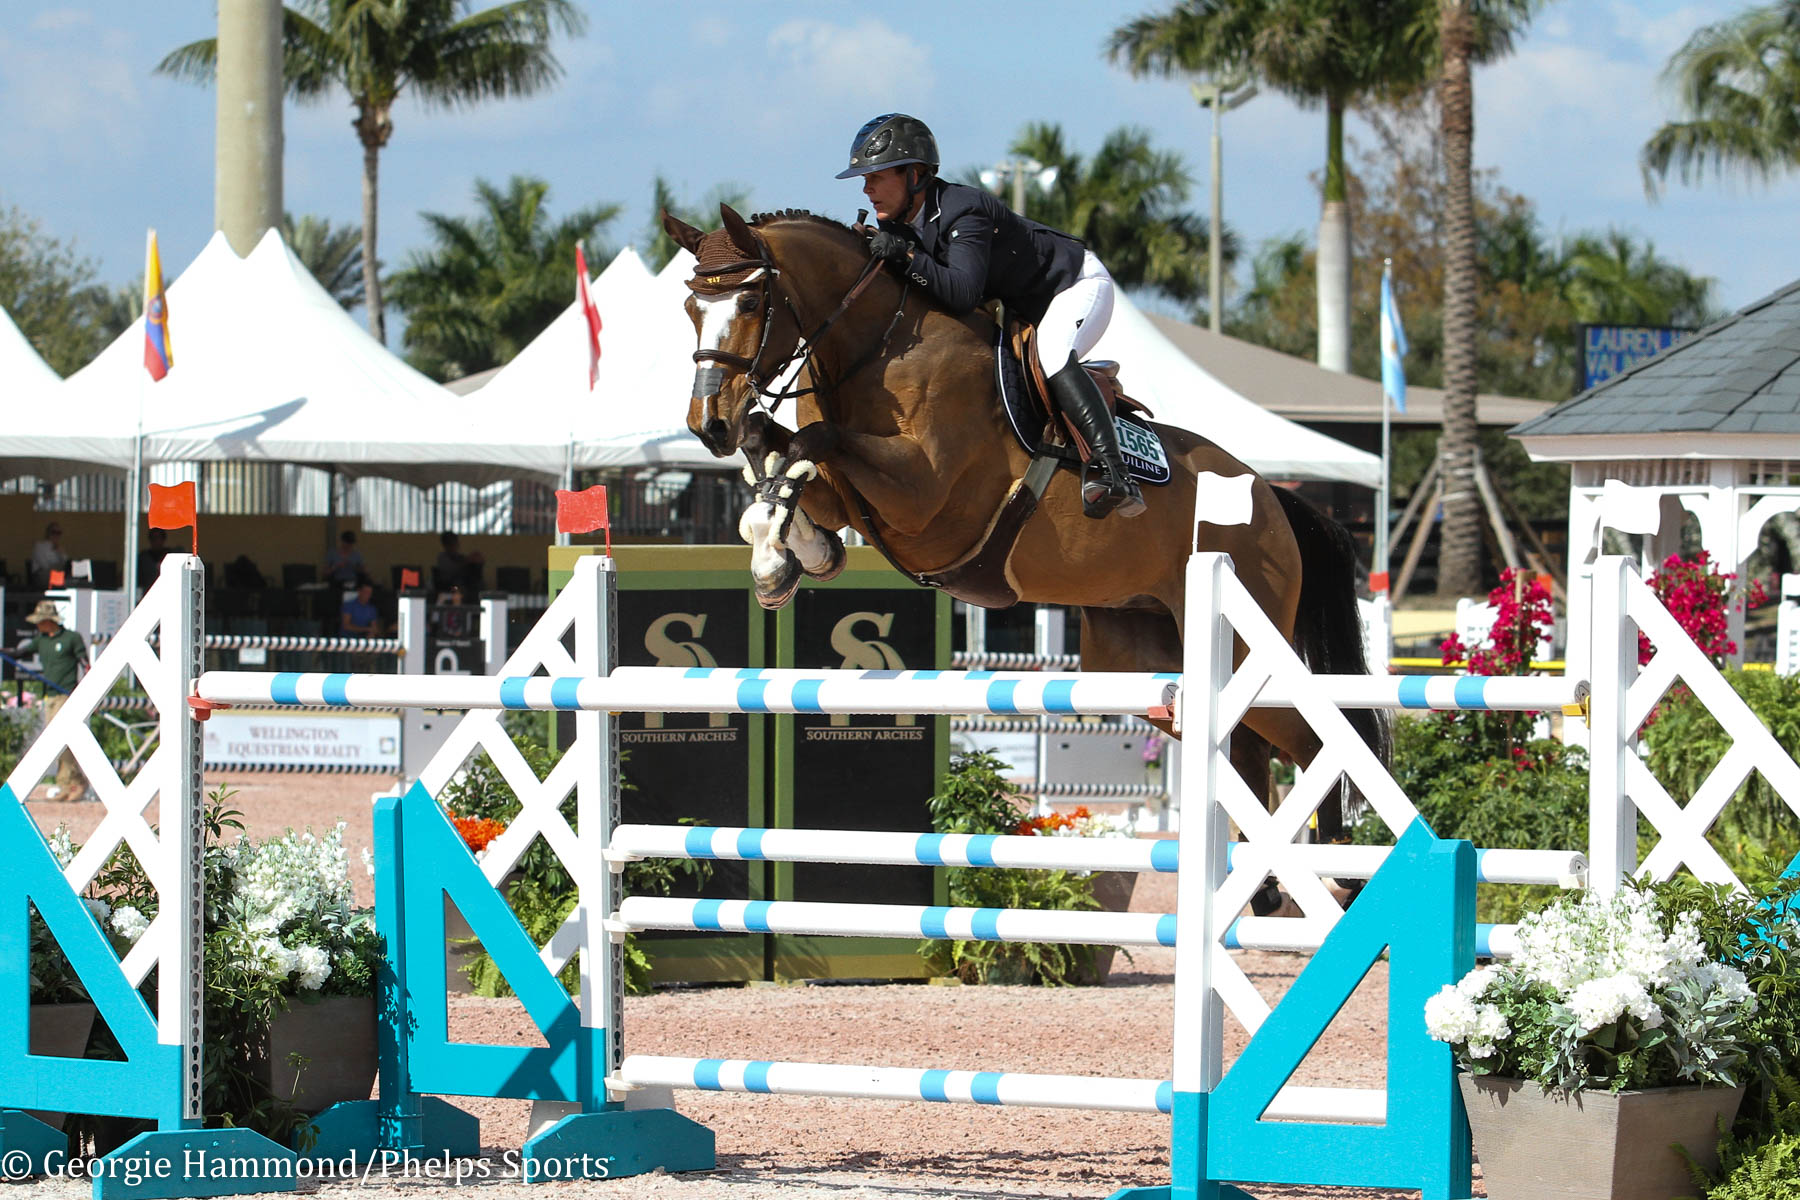 Lauren and Valinski S competing at the 2019 Winter Equestrian Festival